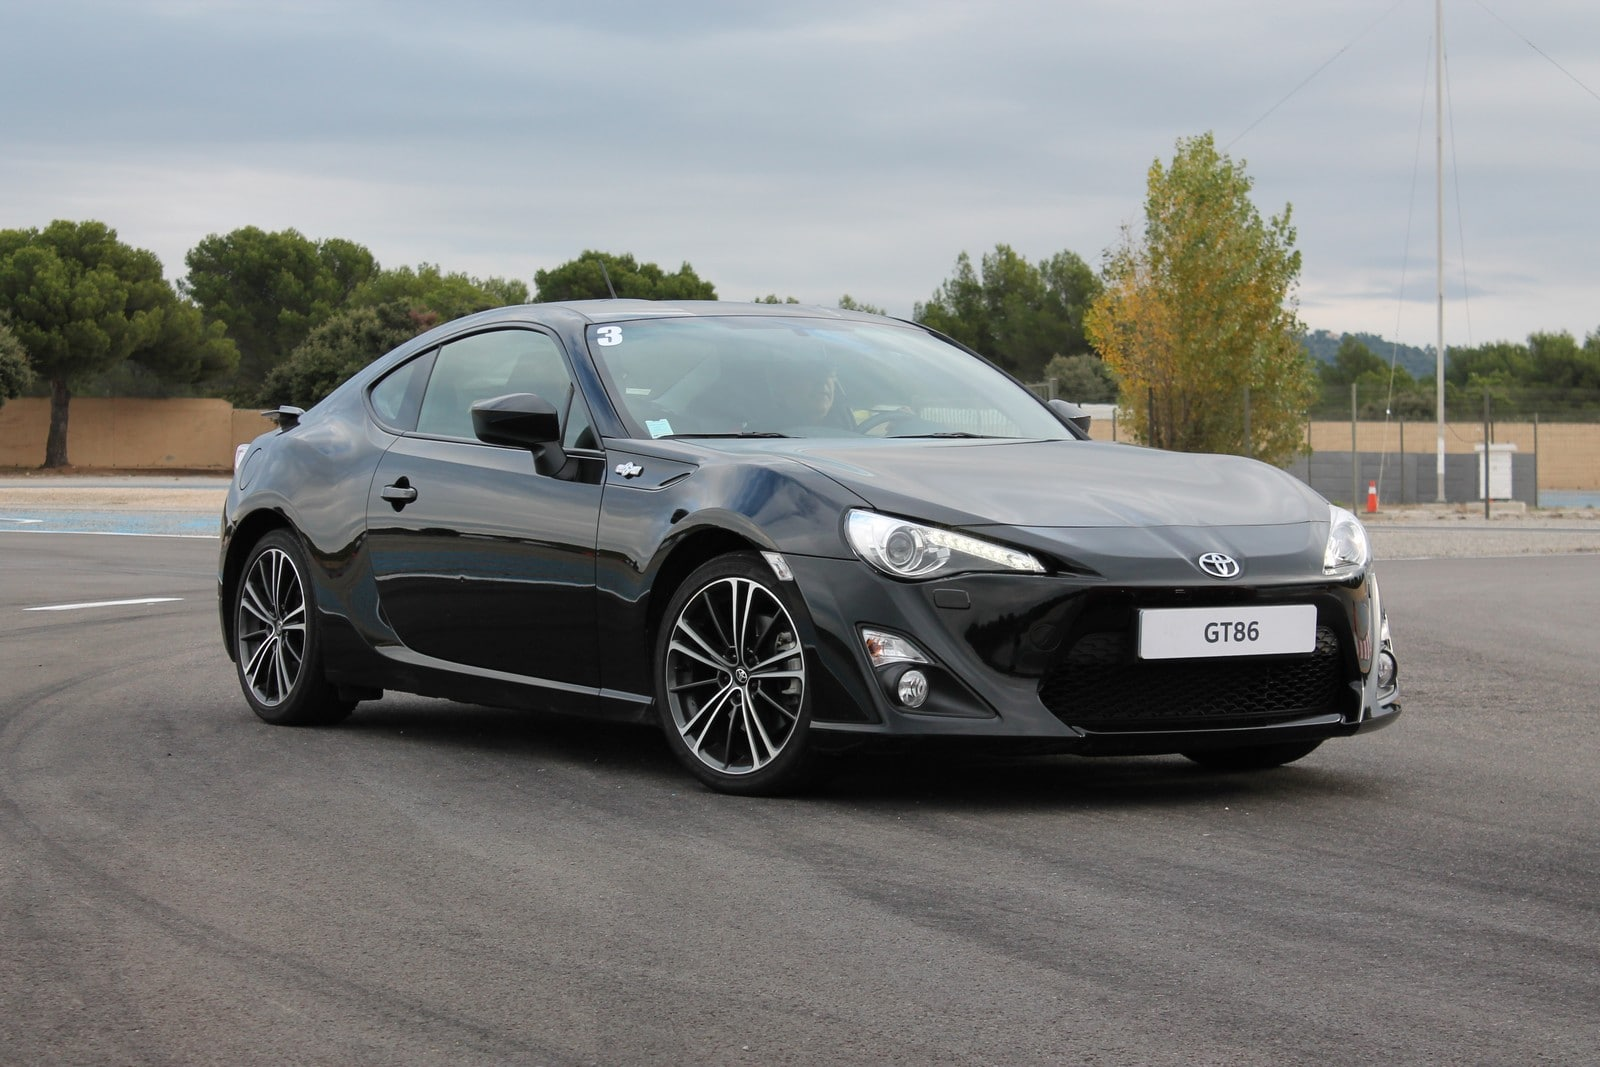 essai toyota gt86 un coup sportif sans r elle concurrence. Black Bedroom Furniture Sets. Home Design Ideas